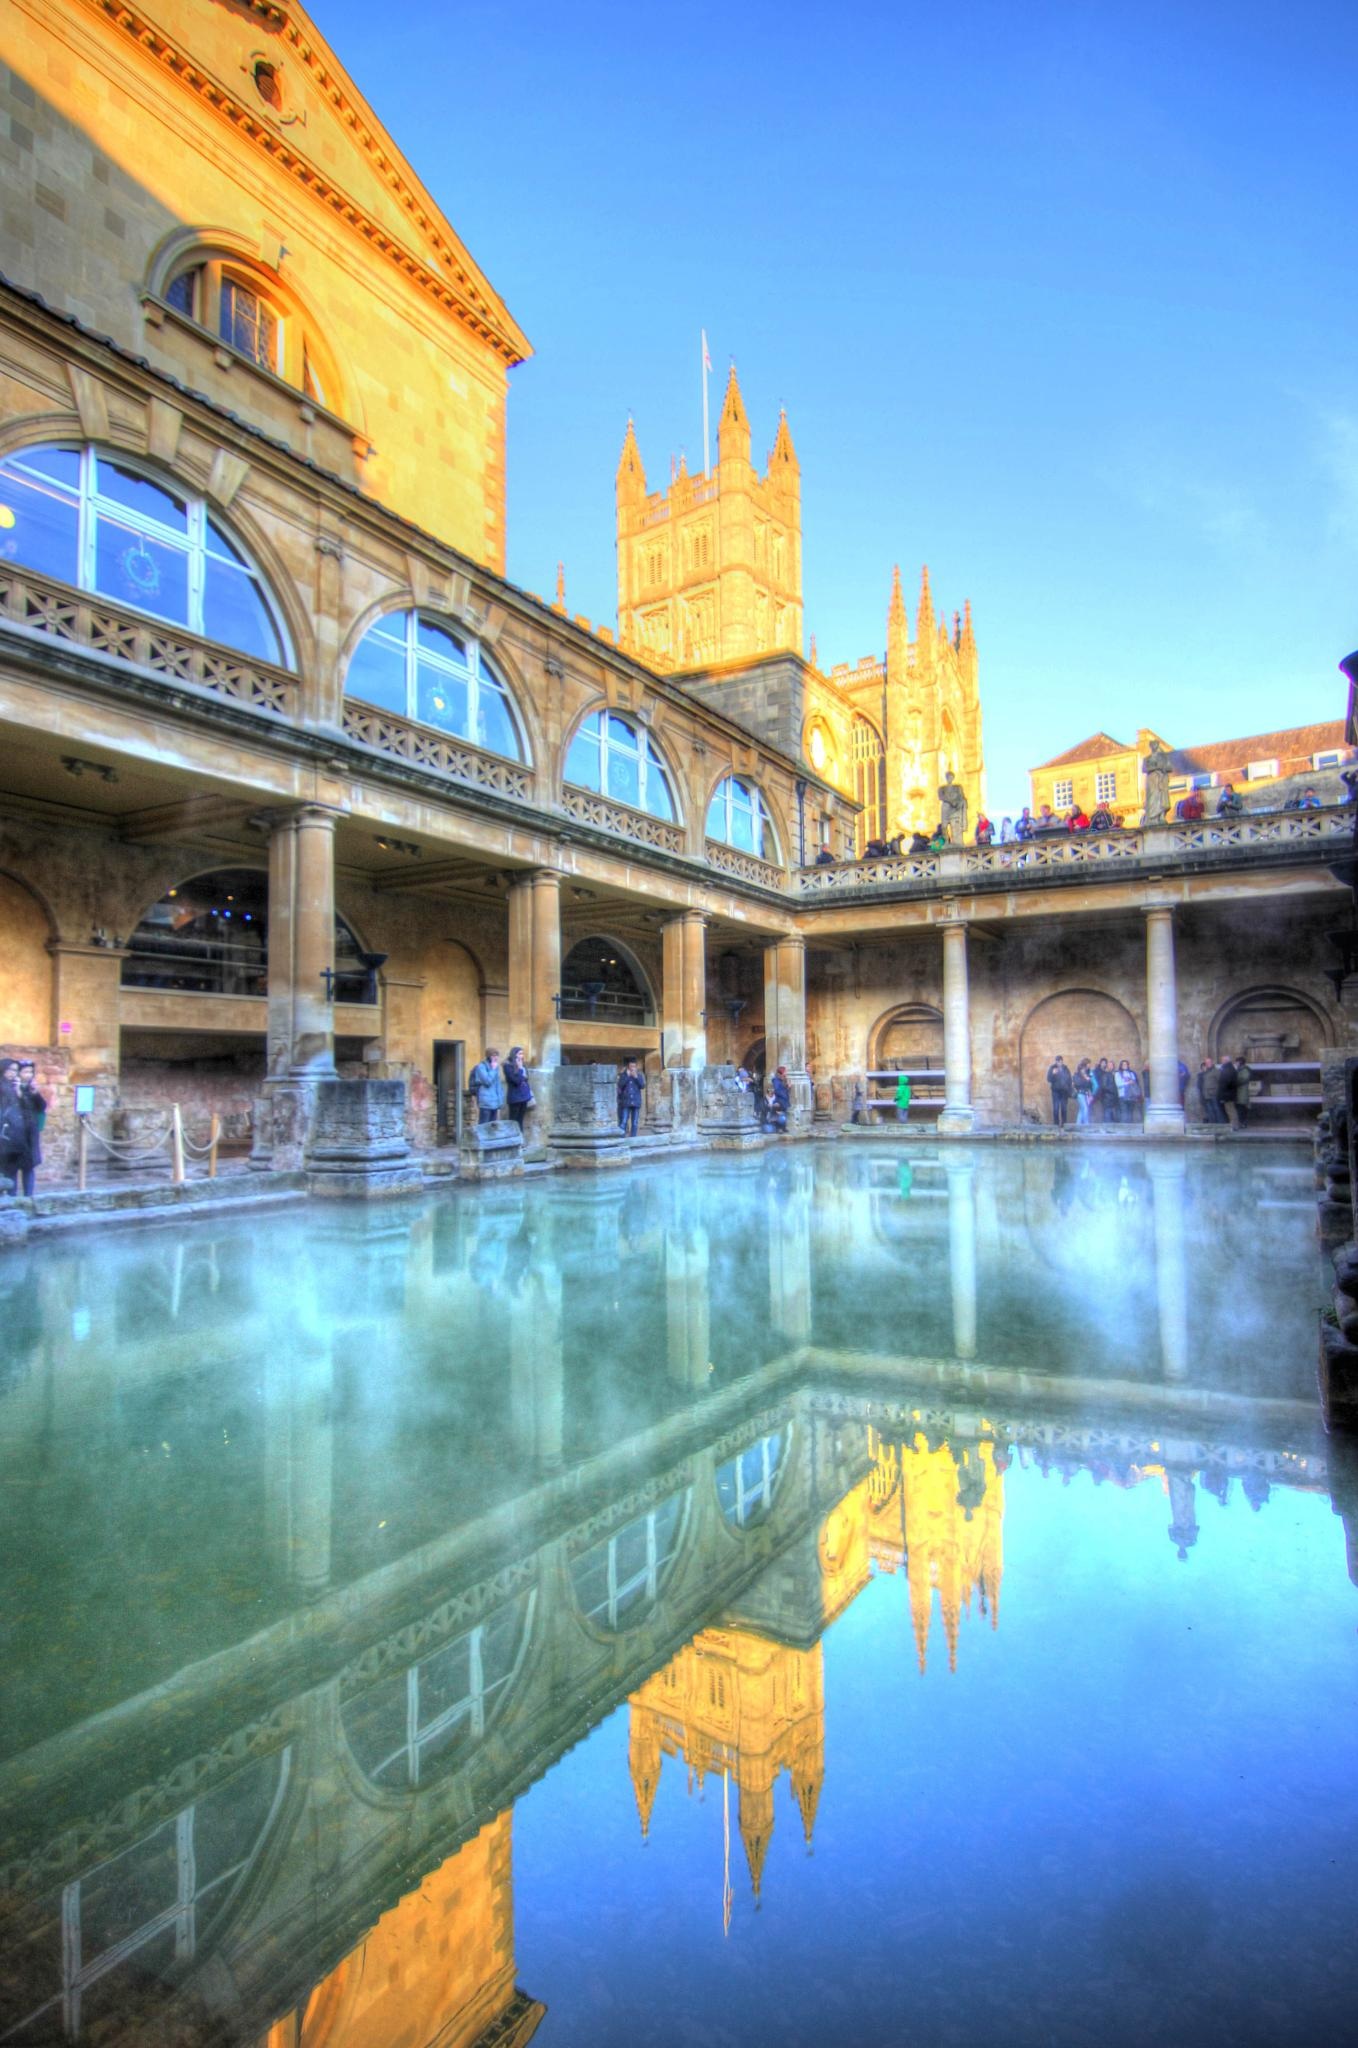 The Roman Baths at Bath and Bath Abbey in the background by Peggy Berger